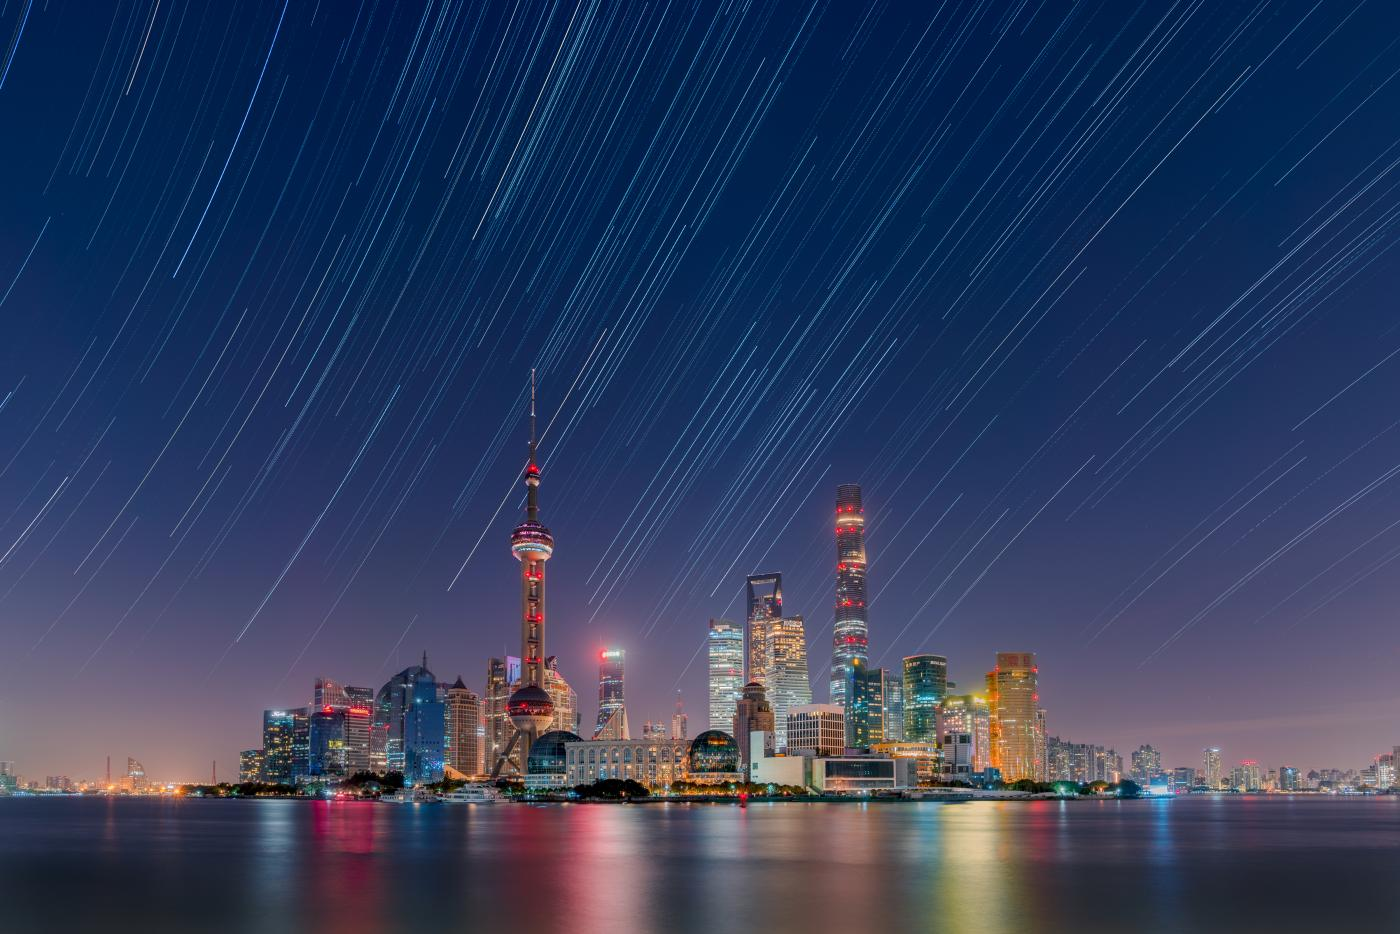 An image showing 'Star trails over the Lujiazui City Skyline'